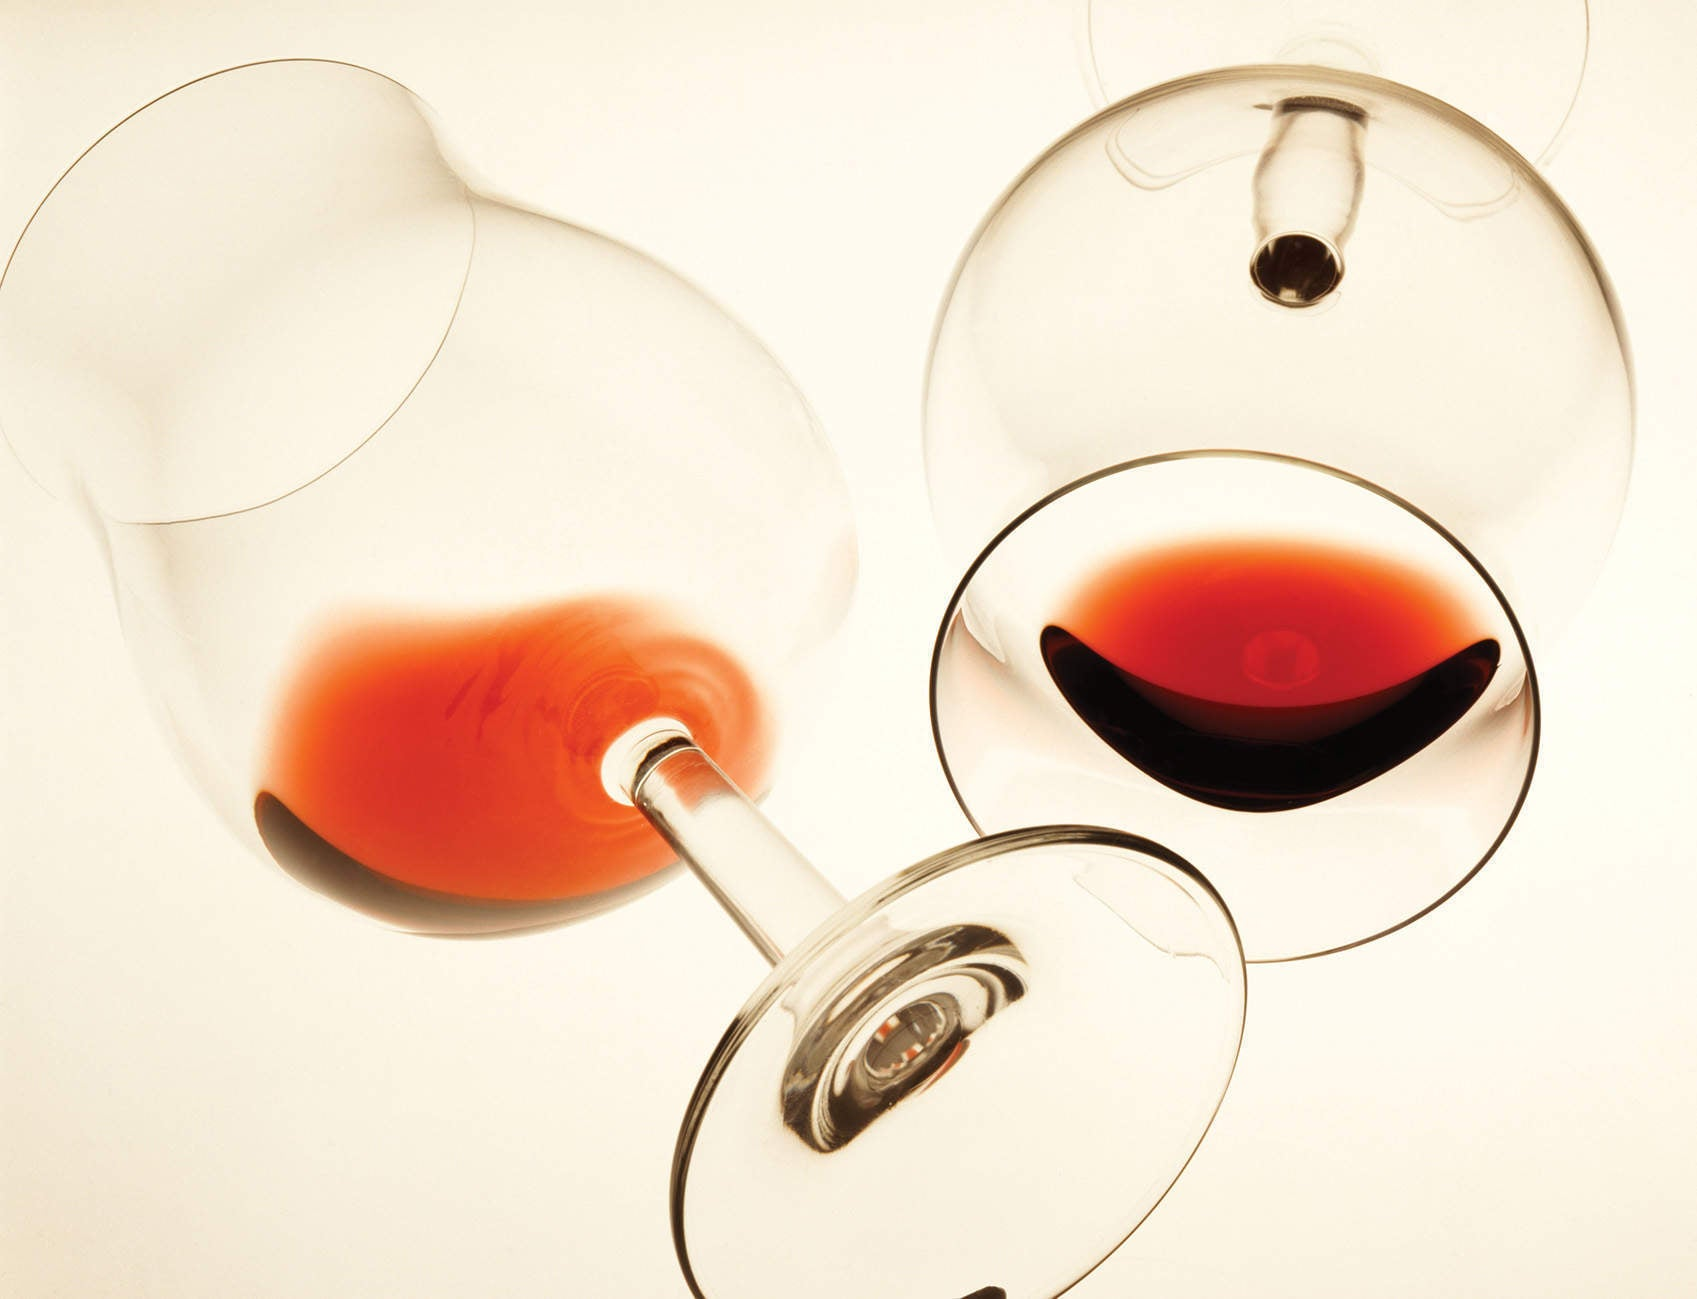 If Burgundy confuses you, don't worry – you're not alone